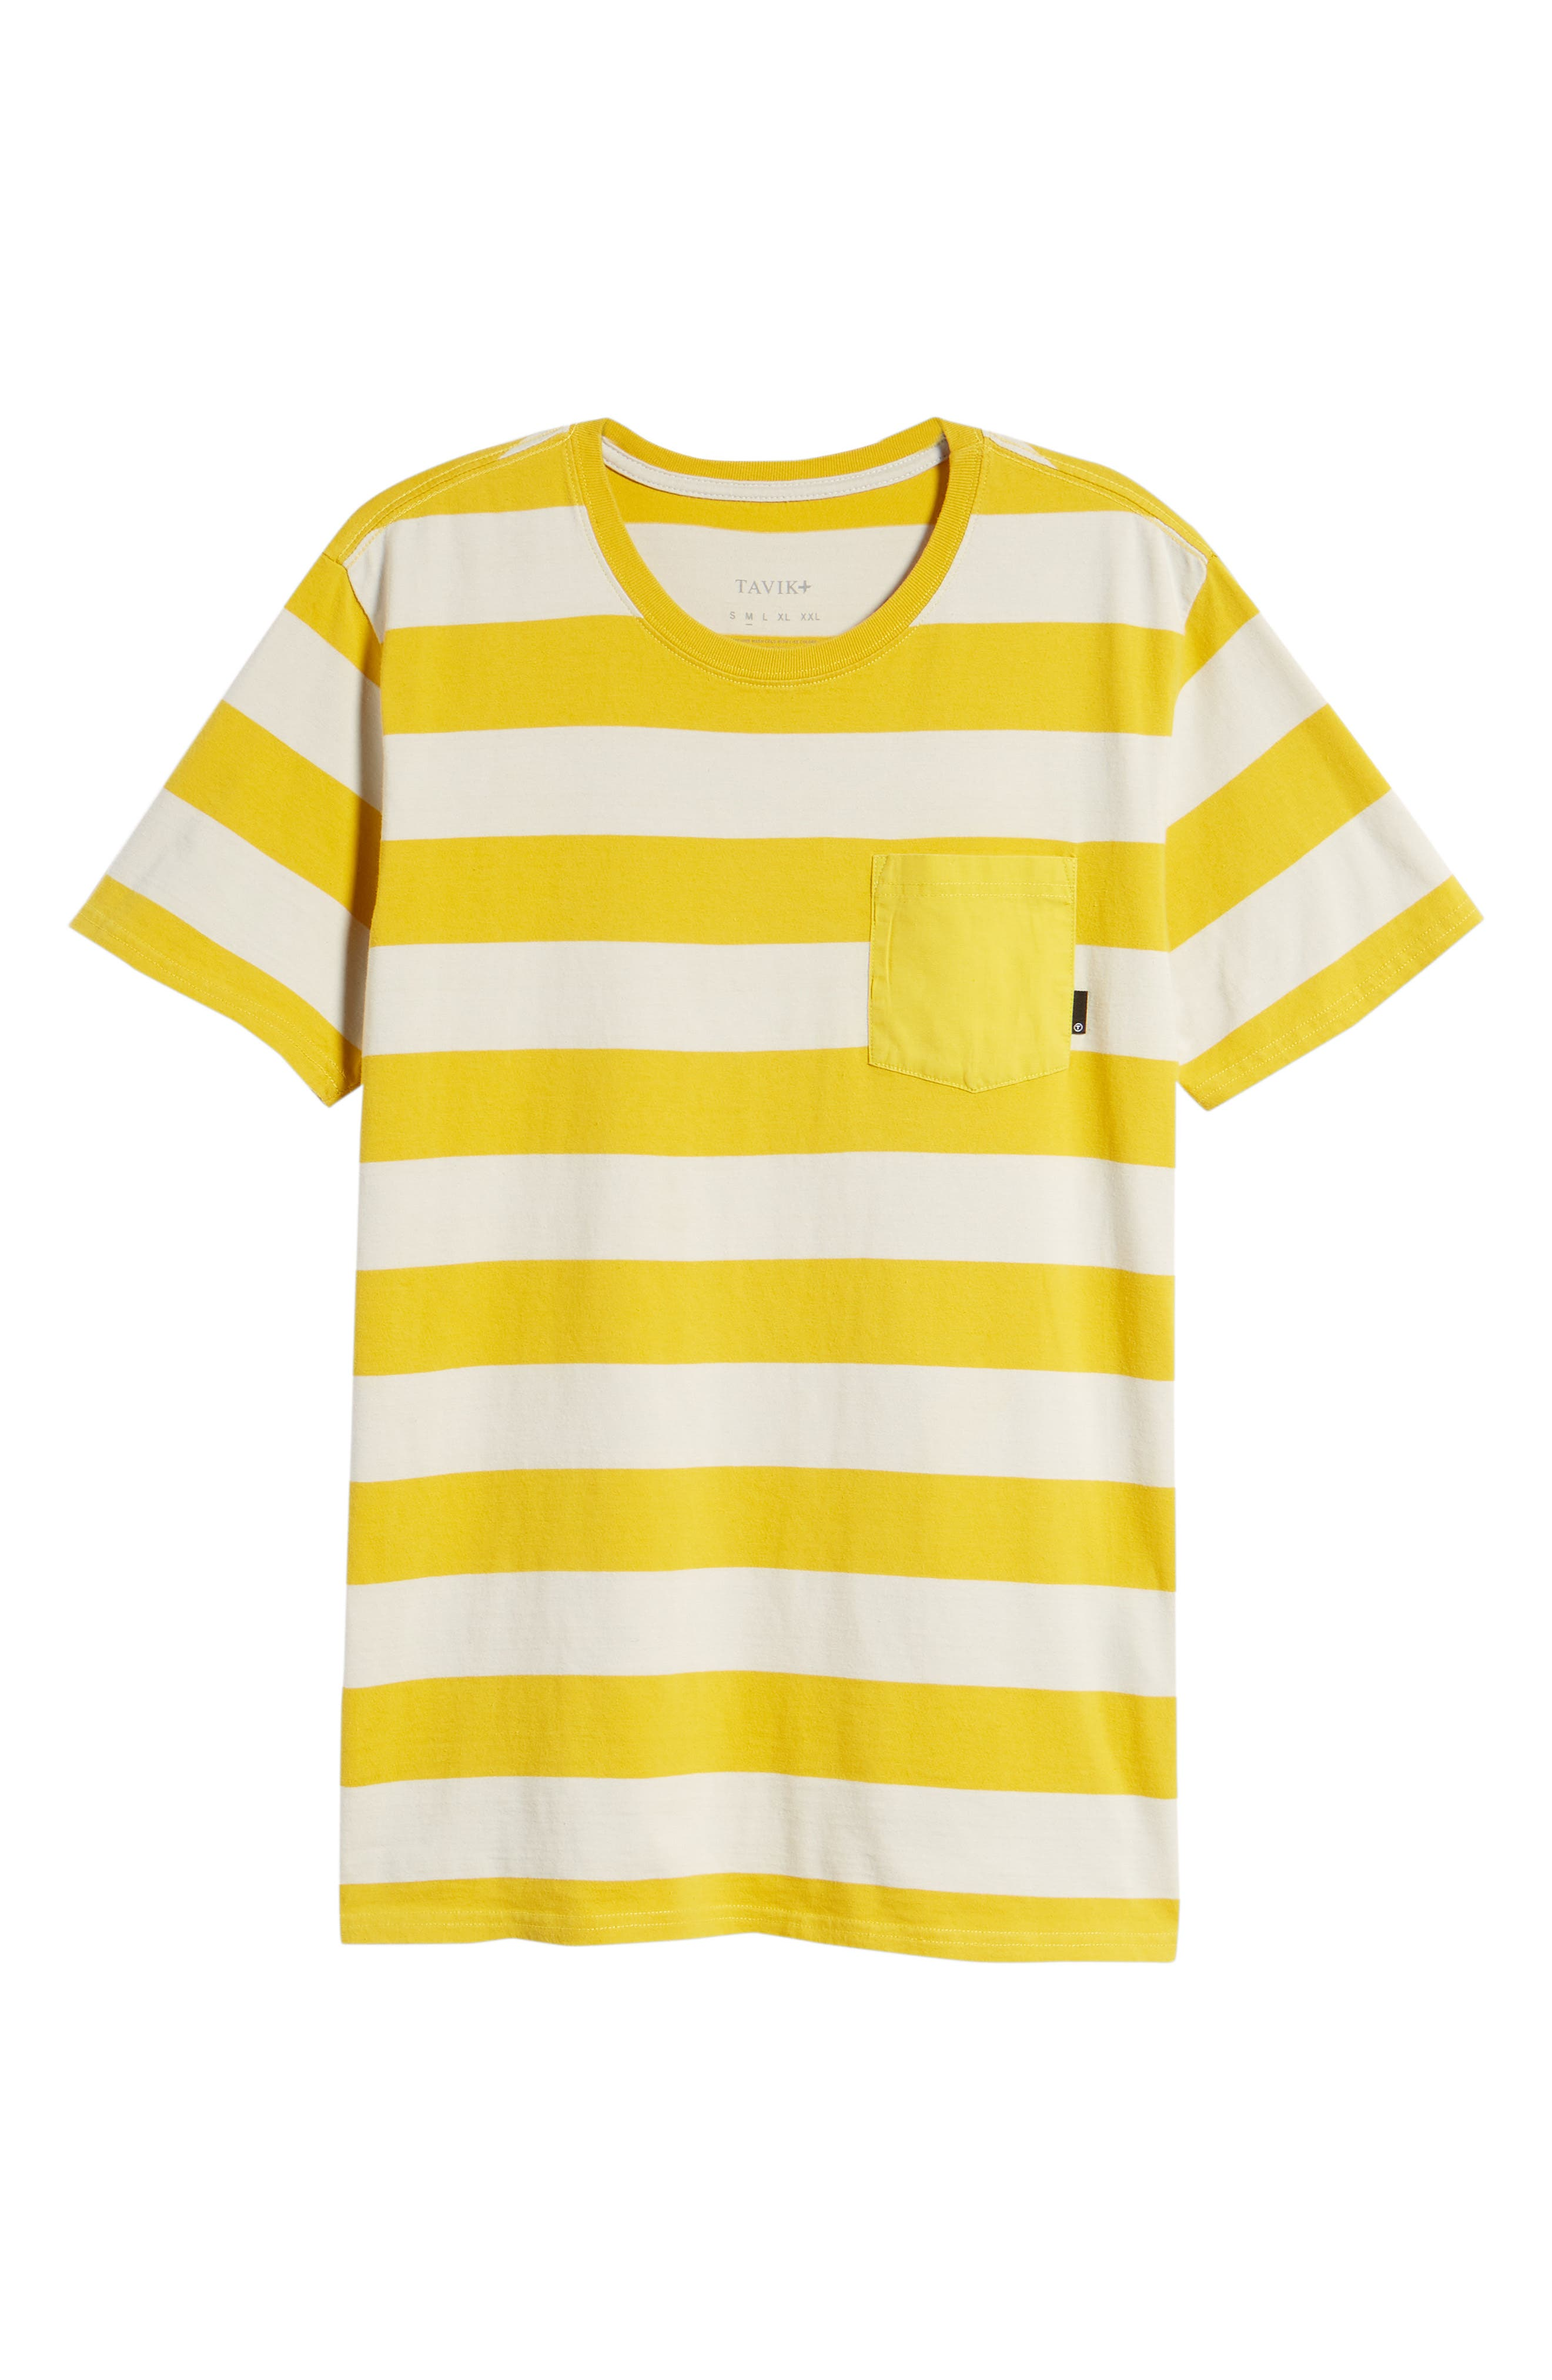 Broadcast Pocket T-Shirt,                             Alternate thumbnail 3, color,                             Natural/Mustard Yellow Stripe